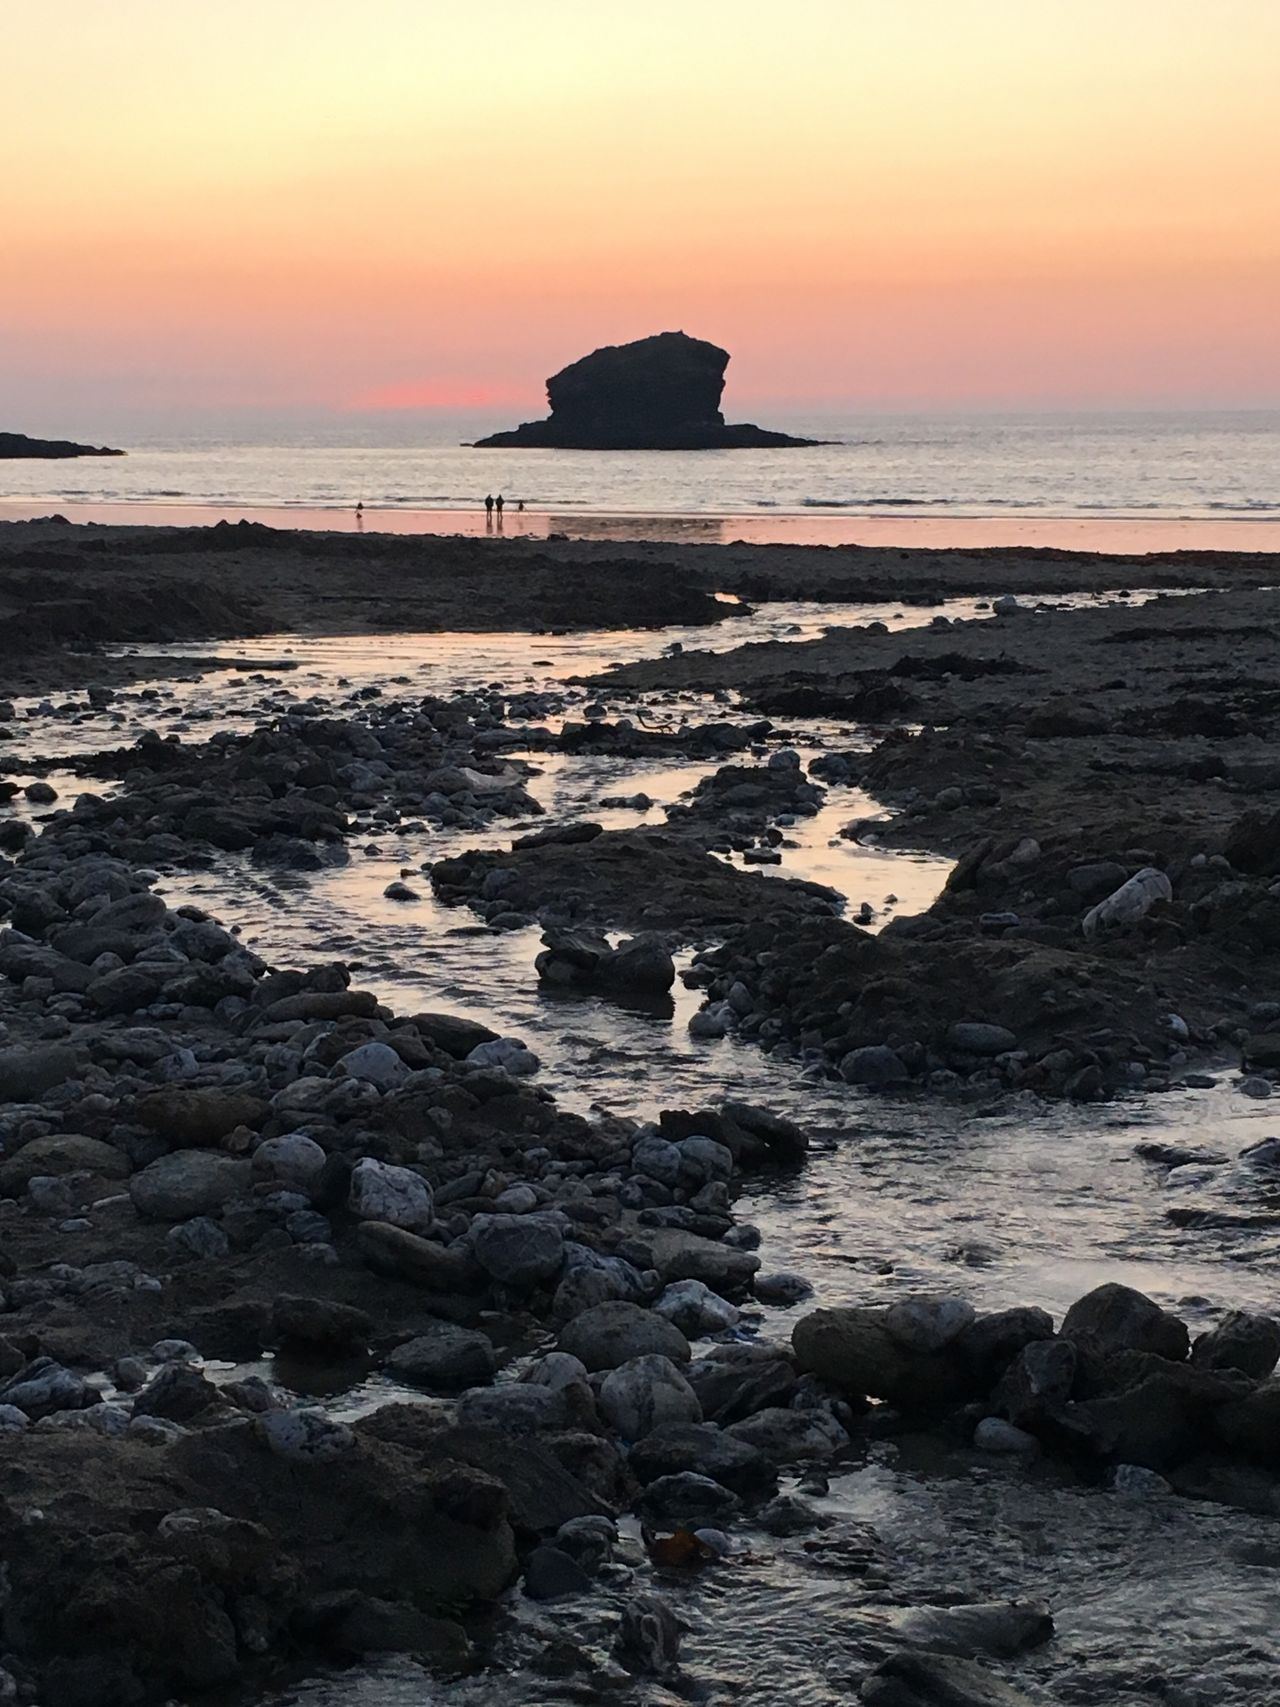 Portreath Cornwall Sunset Sea Beach Stream Lovewhereilive EyeMe Best Shot - Landscape Water Horizon Over Water Nofilter The Great Outdoors - 2017 EyeEm Awards The Great Outdoors - 2017 EyeEm Awards